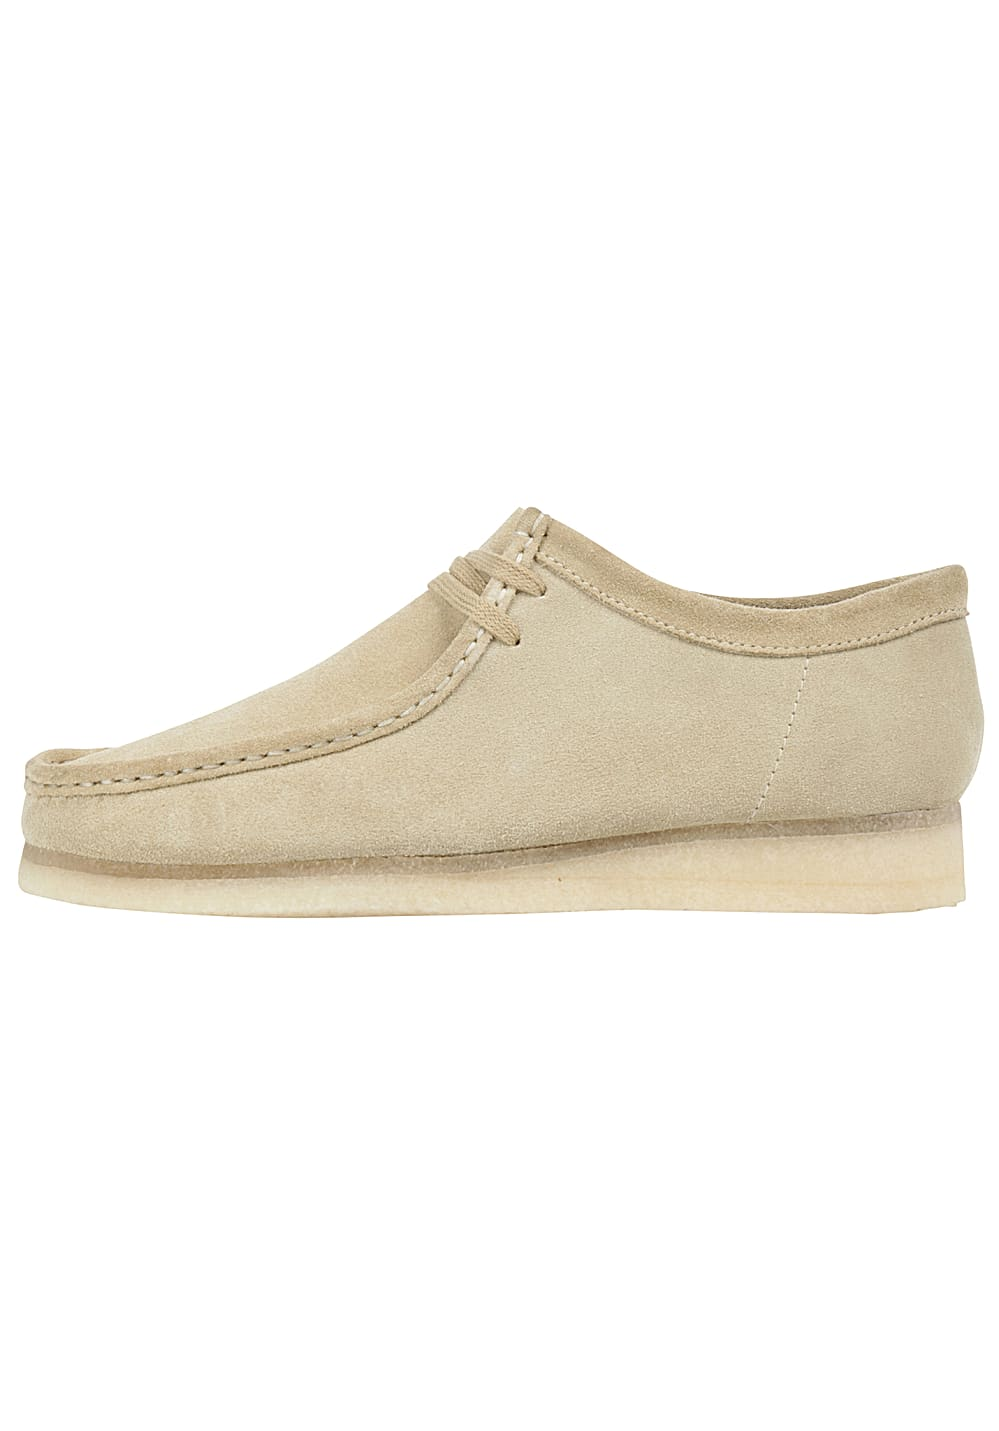 CLARKS ORIGINALS Wallabee Fashion Schuhe für Herren Beige